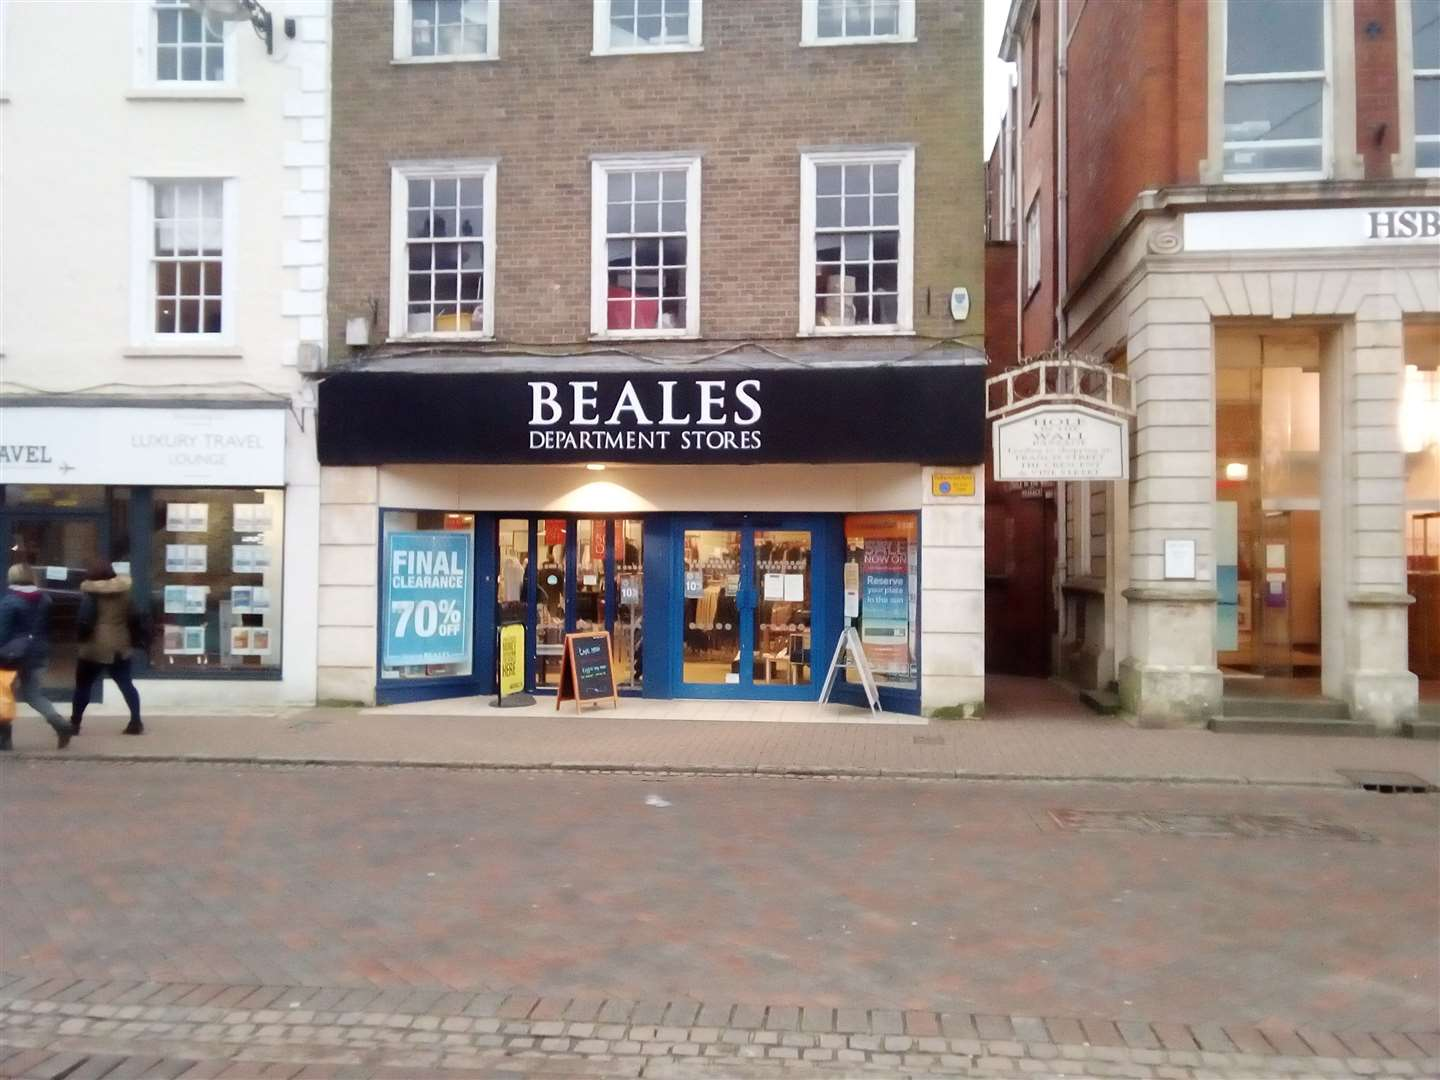 Beales Department store in Spalding (26646205)